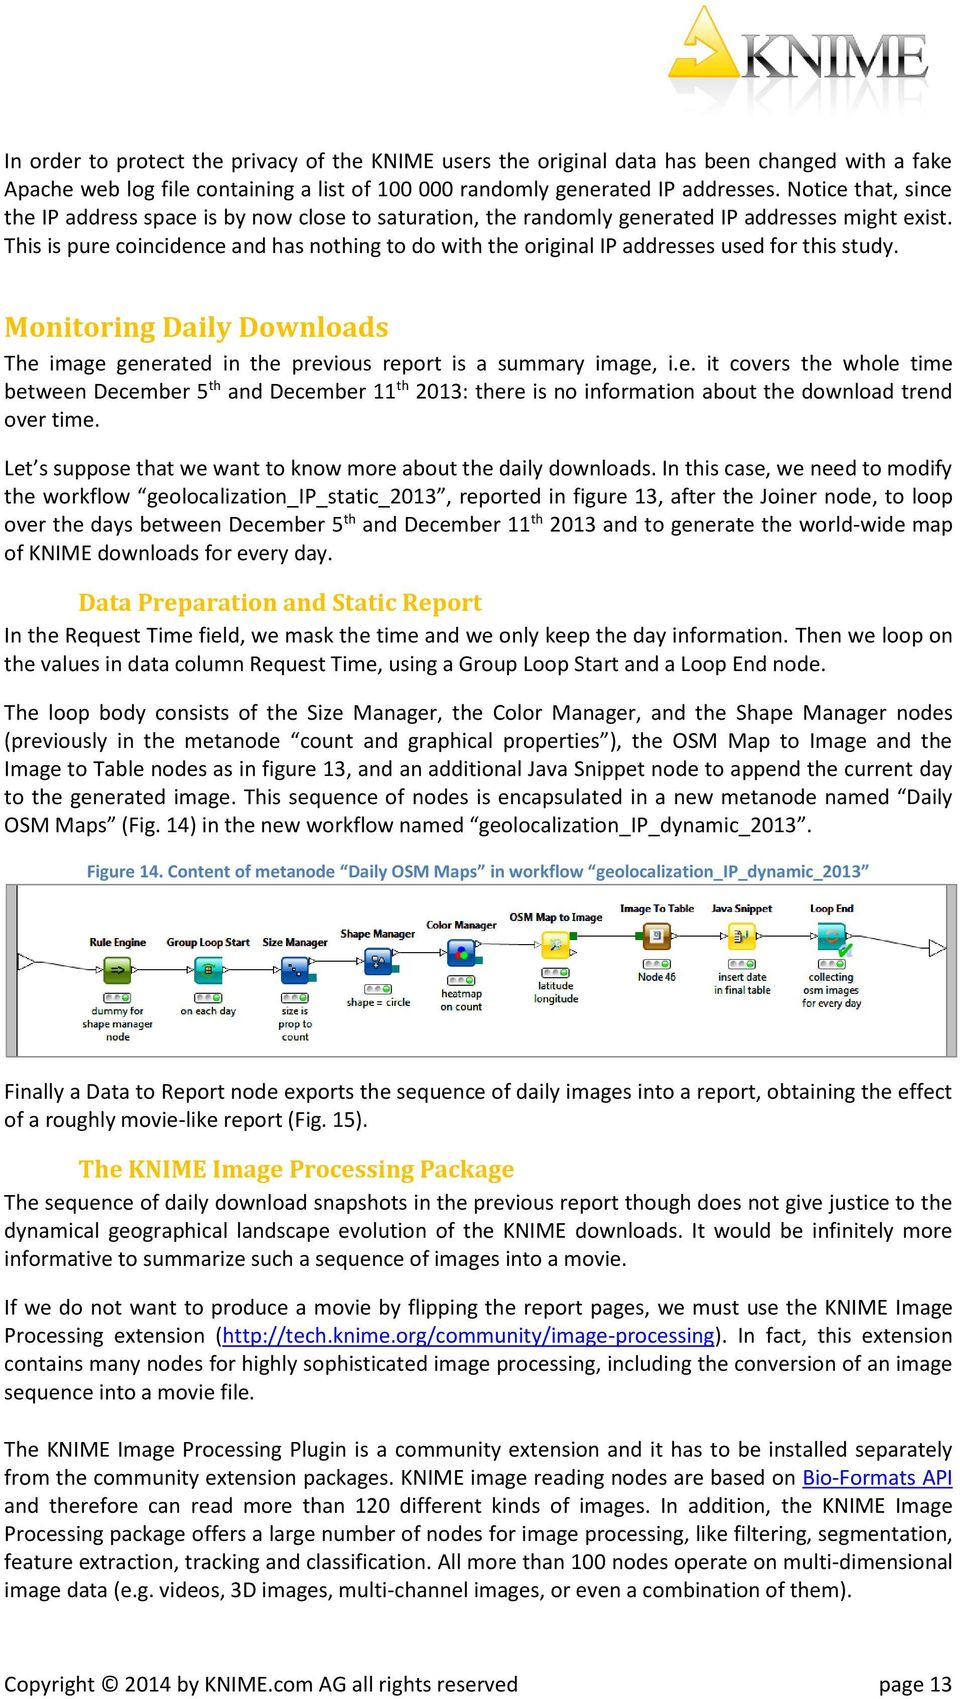 This is pure coincidence and has nothing to do with the original IP addresses used for this study. Monitoring Daily Downloads The image generated in the previous report is a summary image, i.e. it covers the whole time between December 5 th and December 11 th 2013: there is no information about the download trend over time.